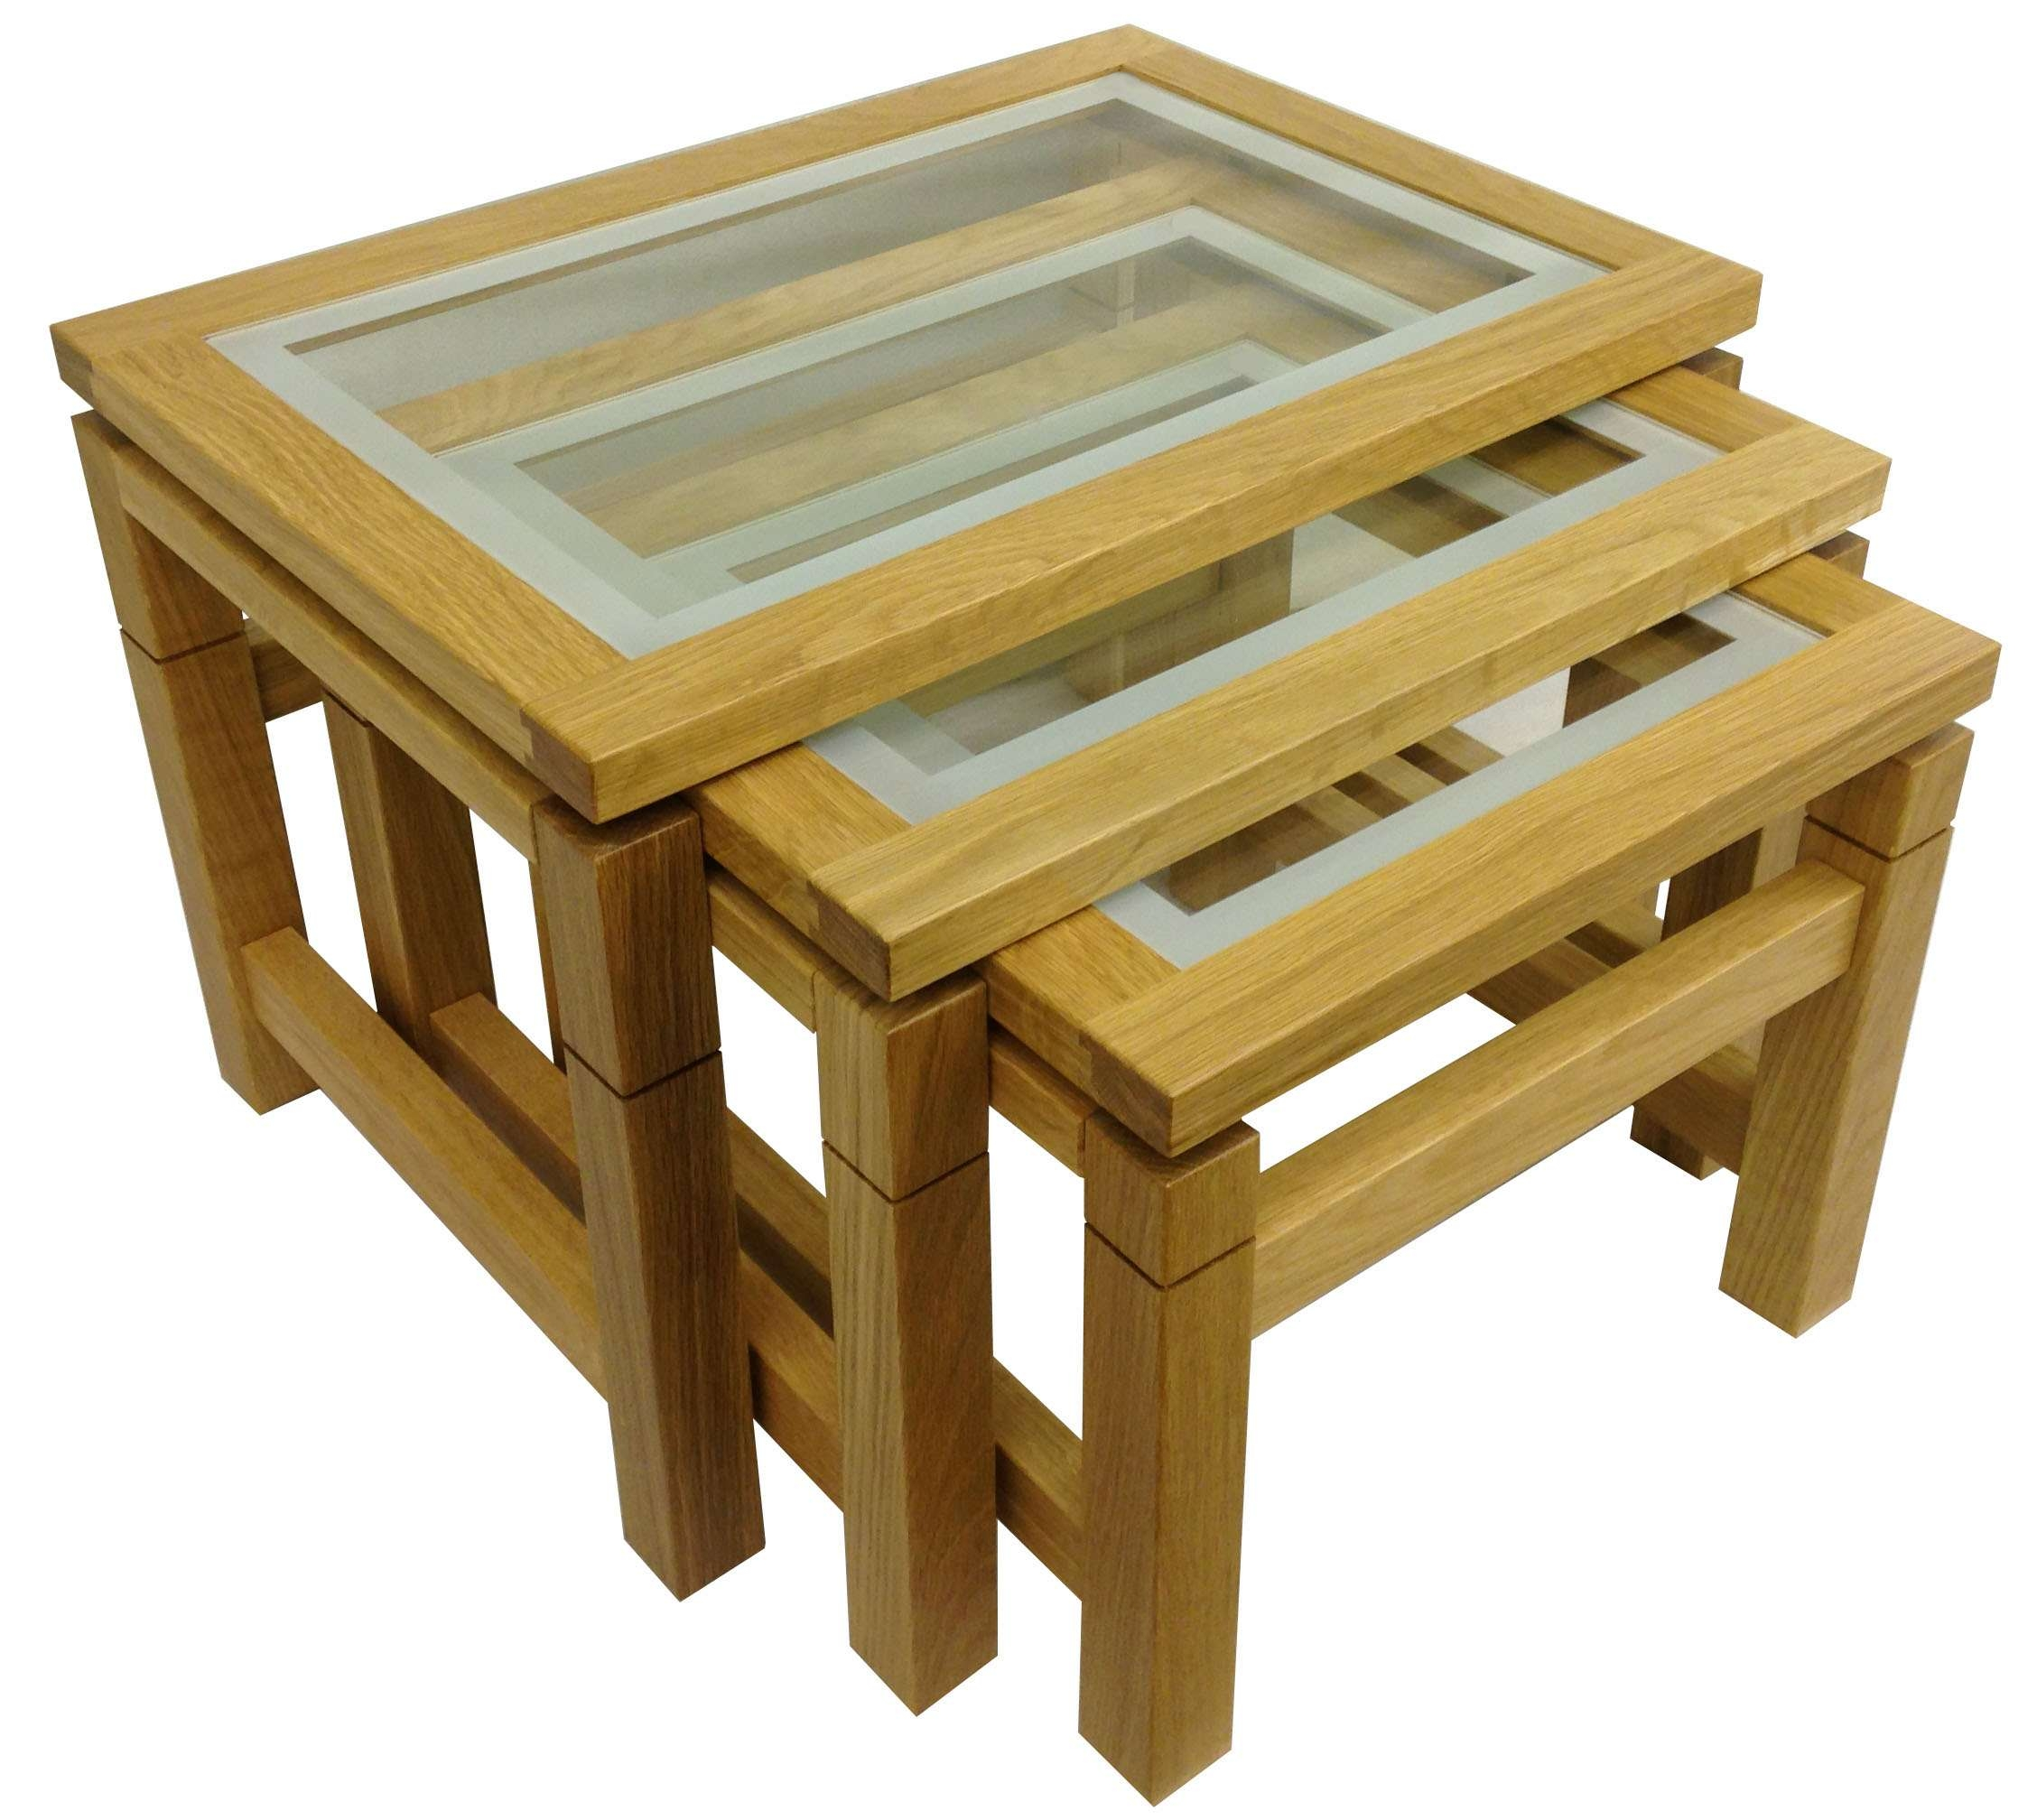 Coffee Tables : Matrix Glass Top Nest Tables In Oak Nesting Coffee With Regard To Well Known Cheap Oak Coffee Tables (View 4 of 20)